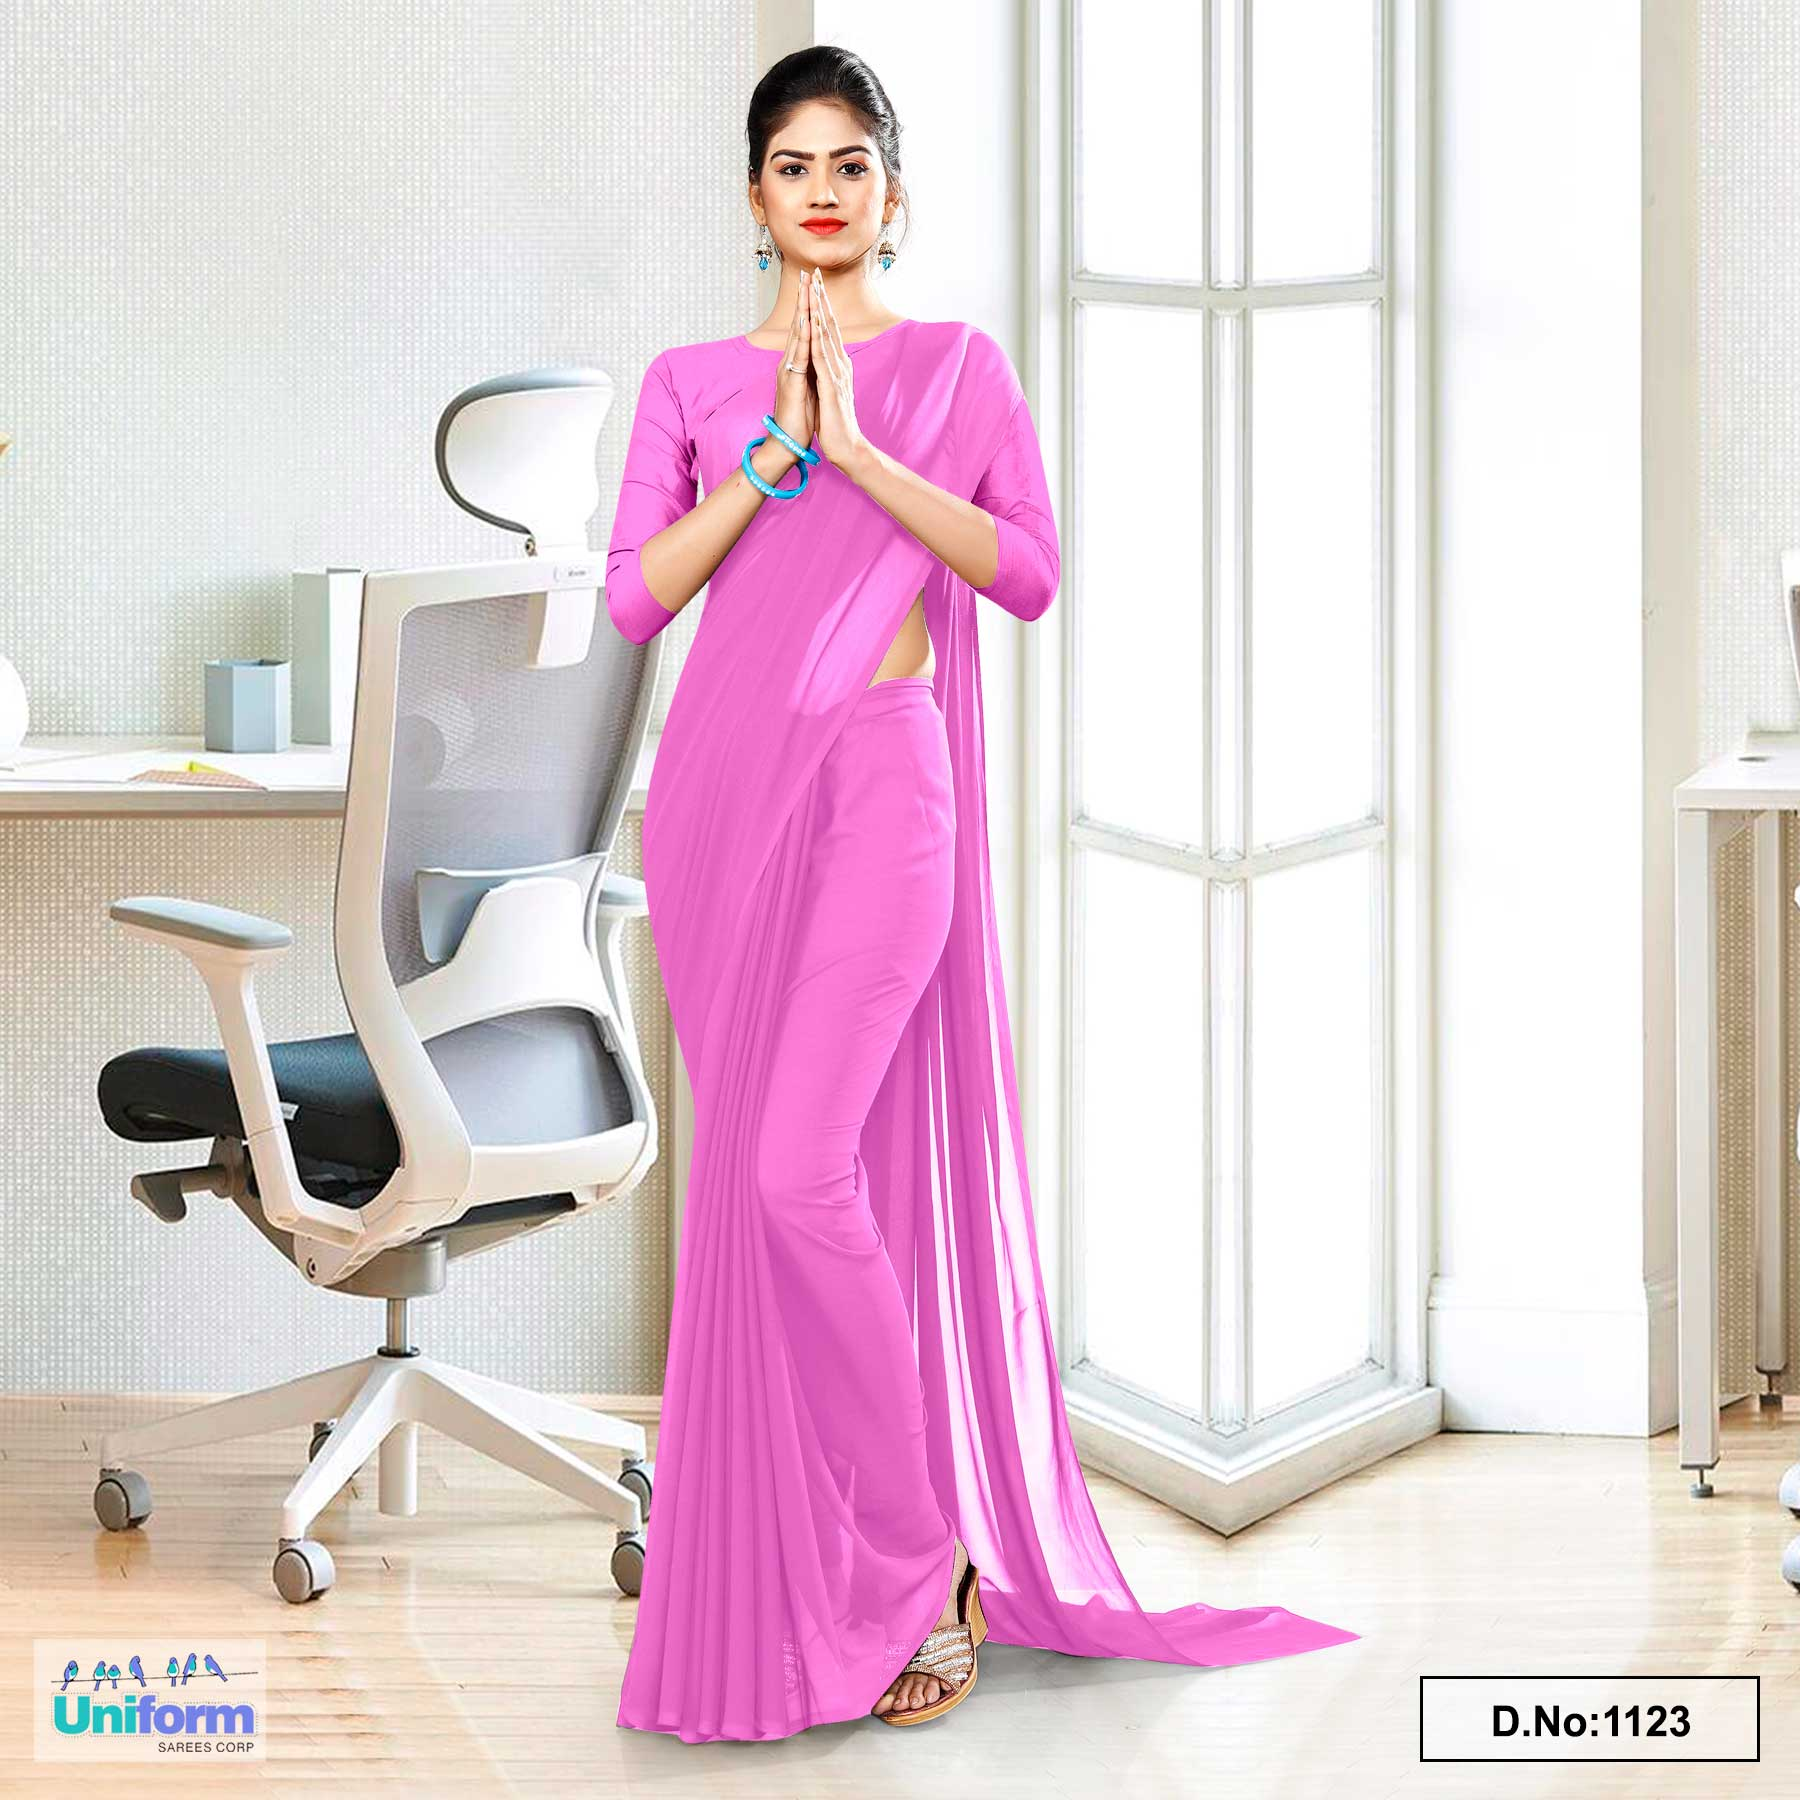 Baby Pink Soft Georgette Plain Uniform Sarees For Front Office Staff